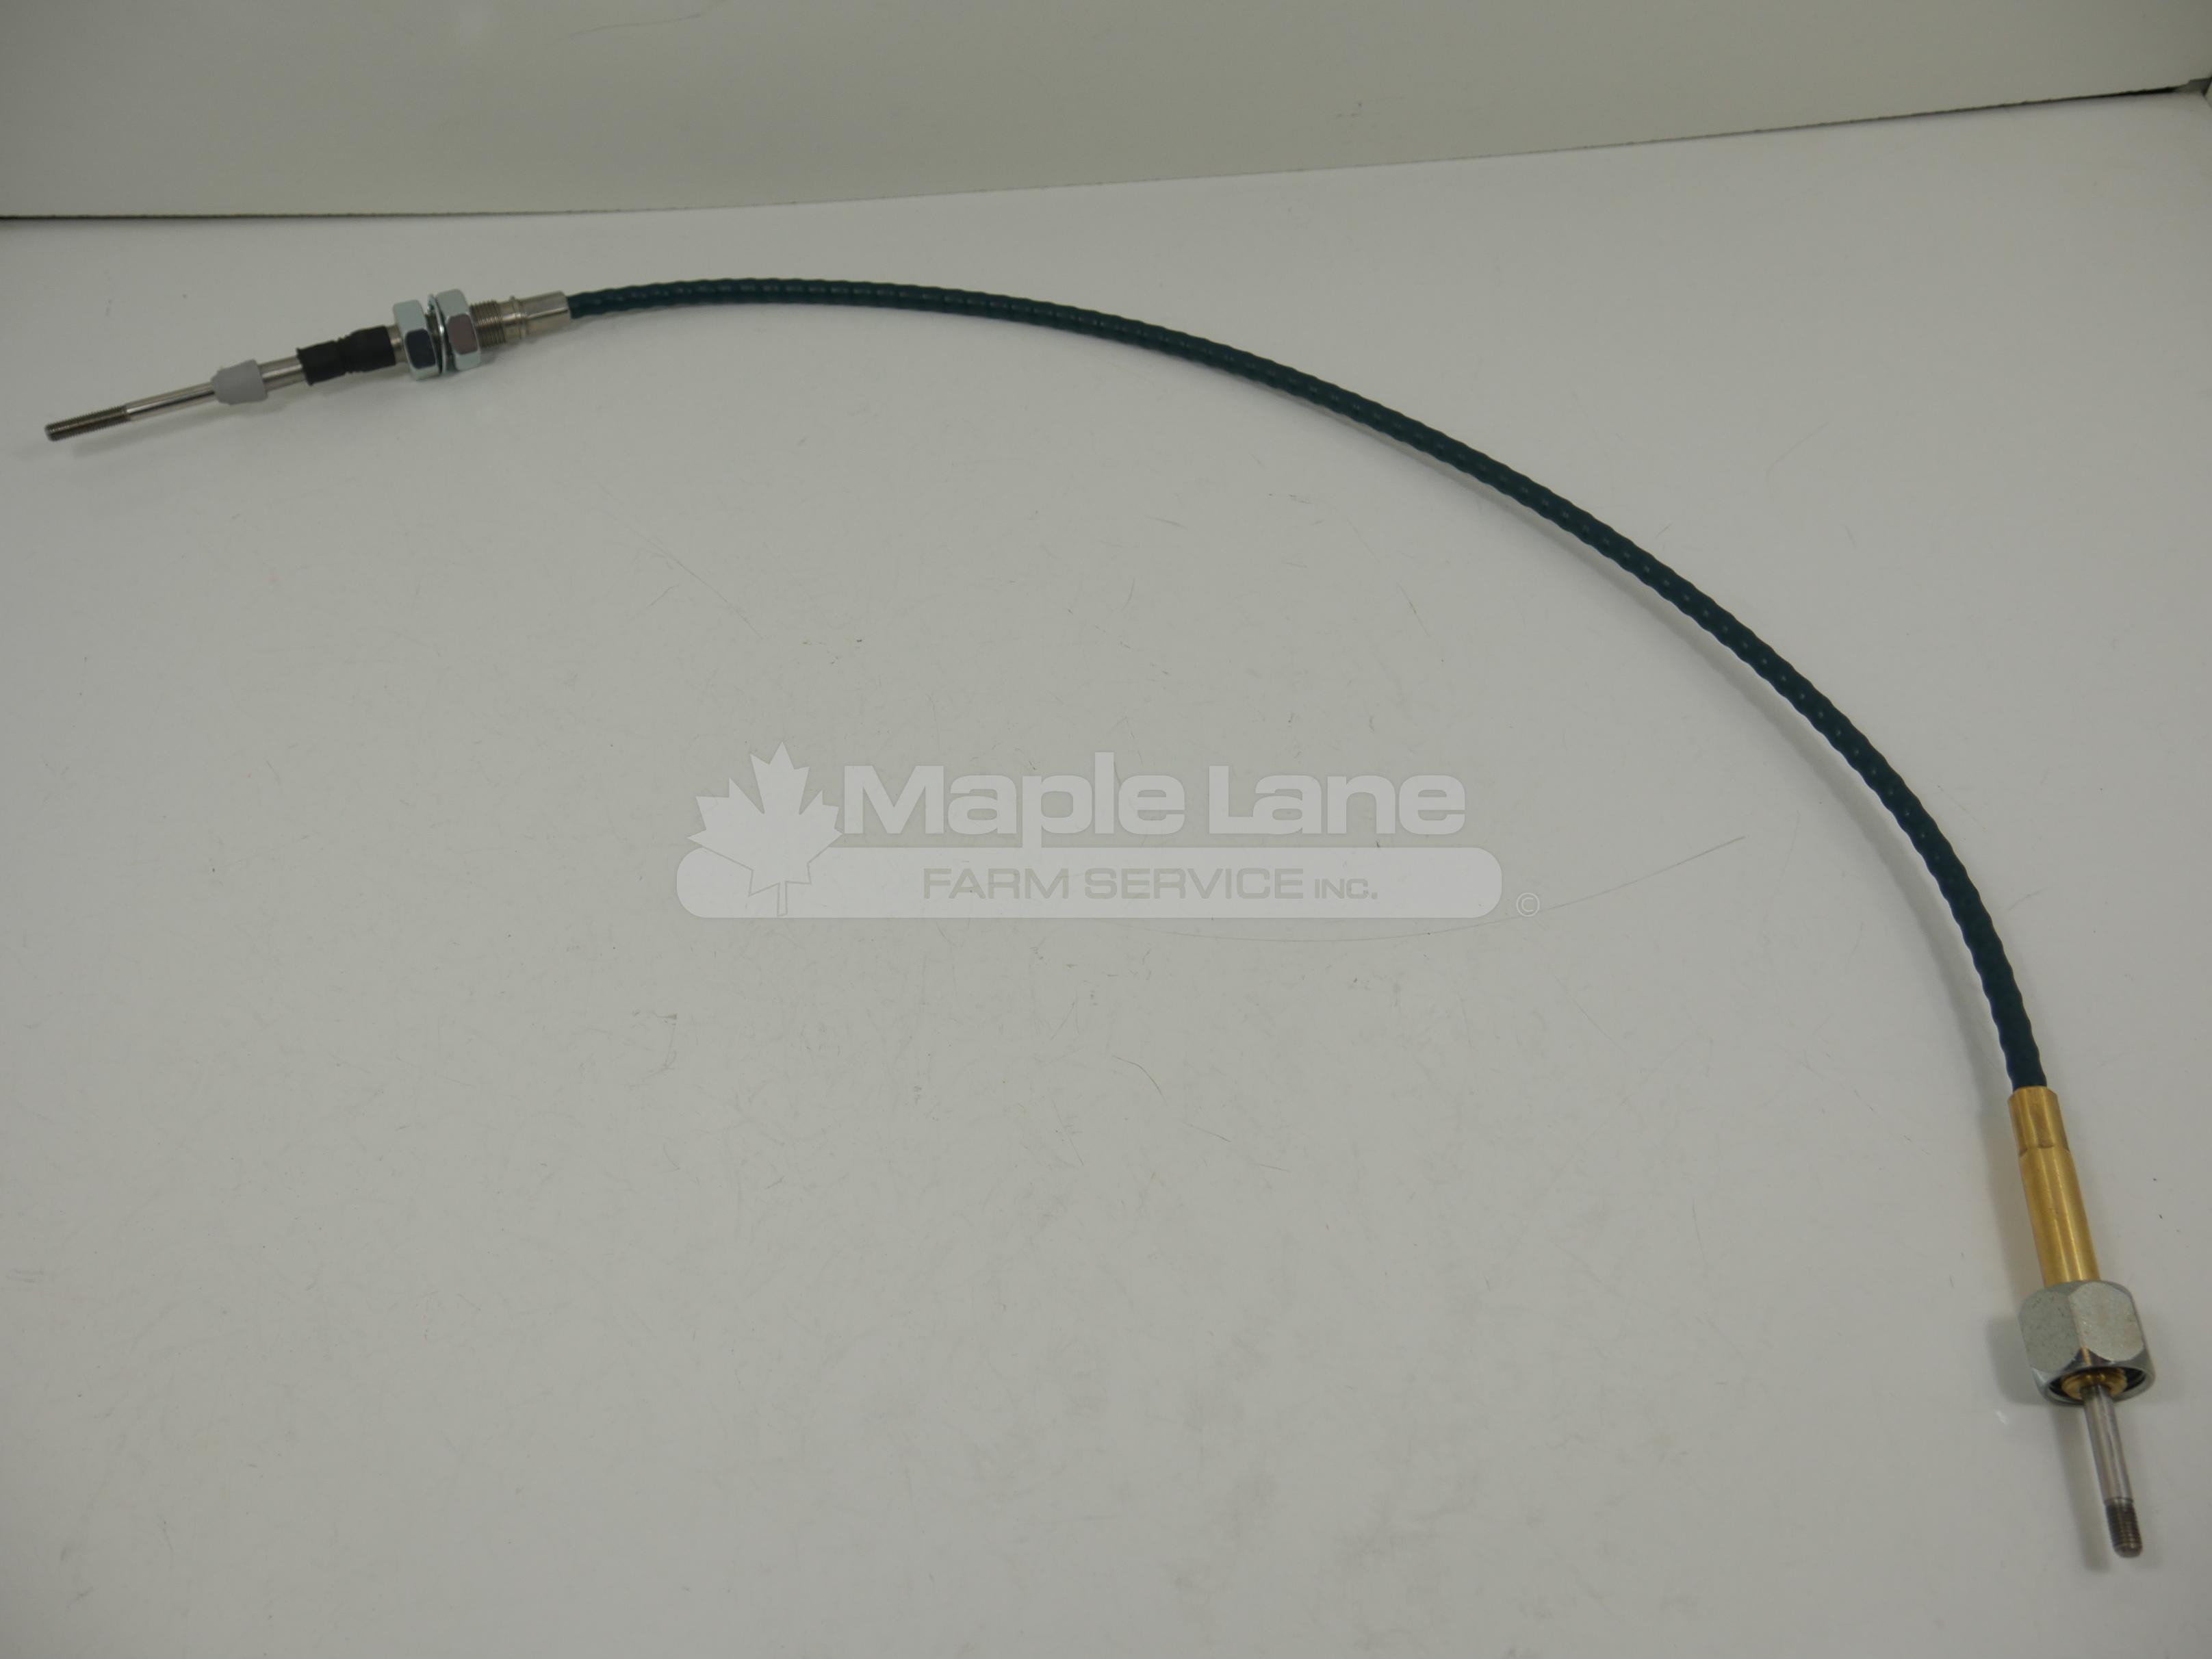 195192 Hand Foot Lift Cable